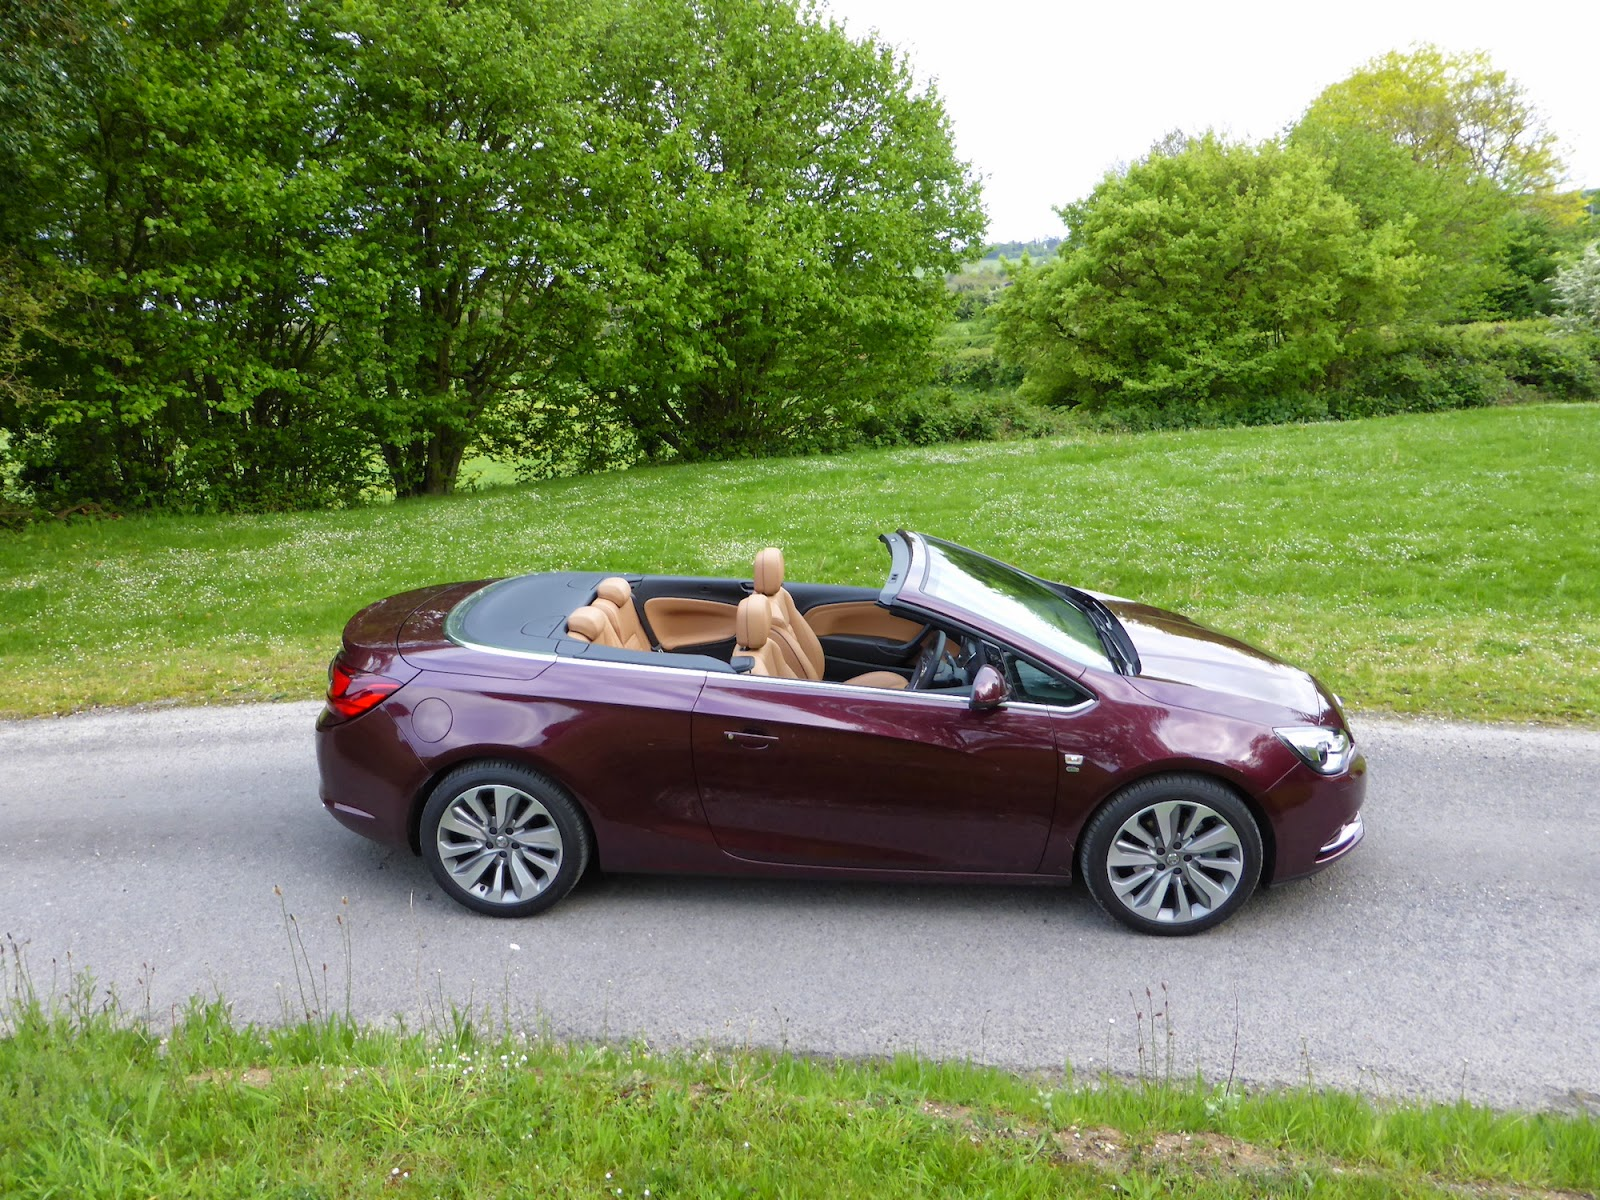 Vauxhall Cascada Elite 1.6i 16v Turbo 200